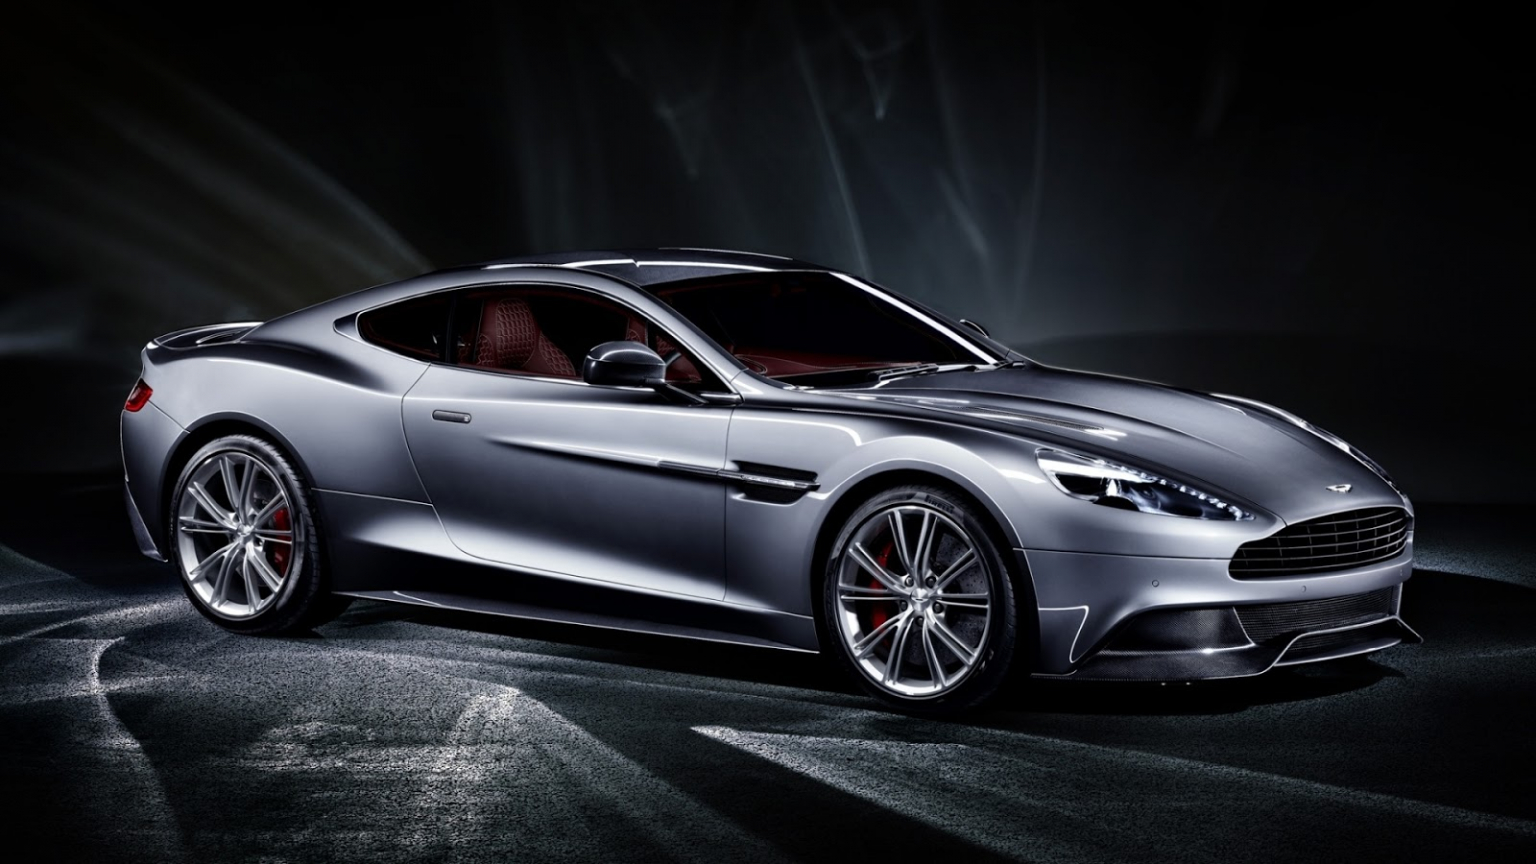 Free Download Aston Martin Vanquish Silver Full Hd Desktop Images, Photos, Reviews